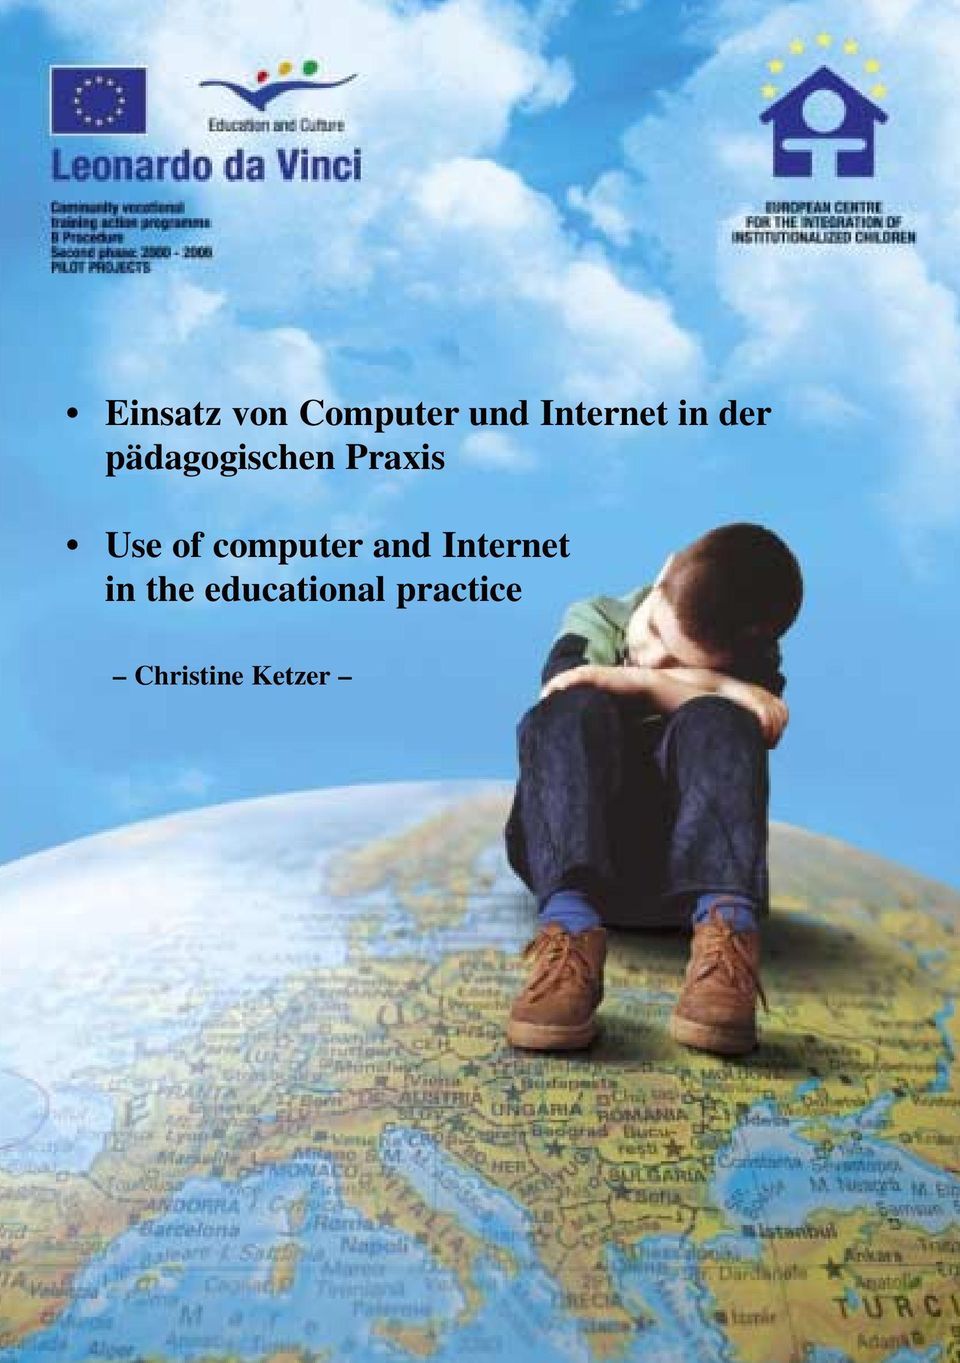 of computer and Internet in the